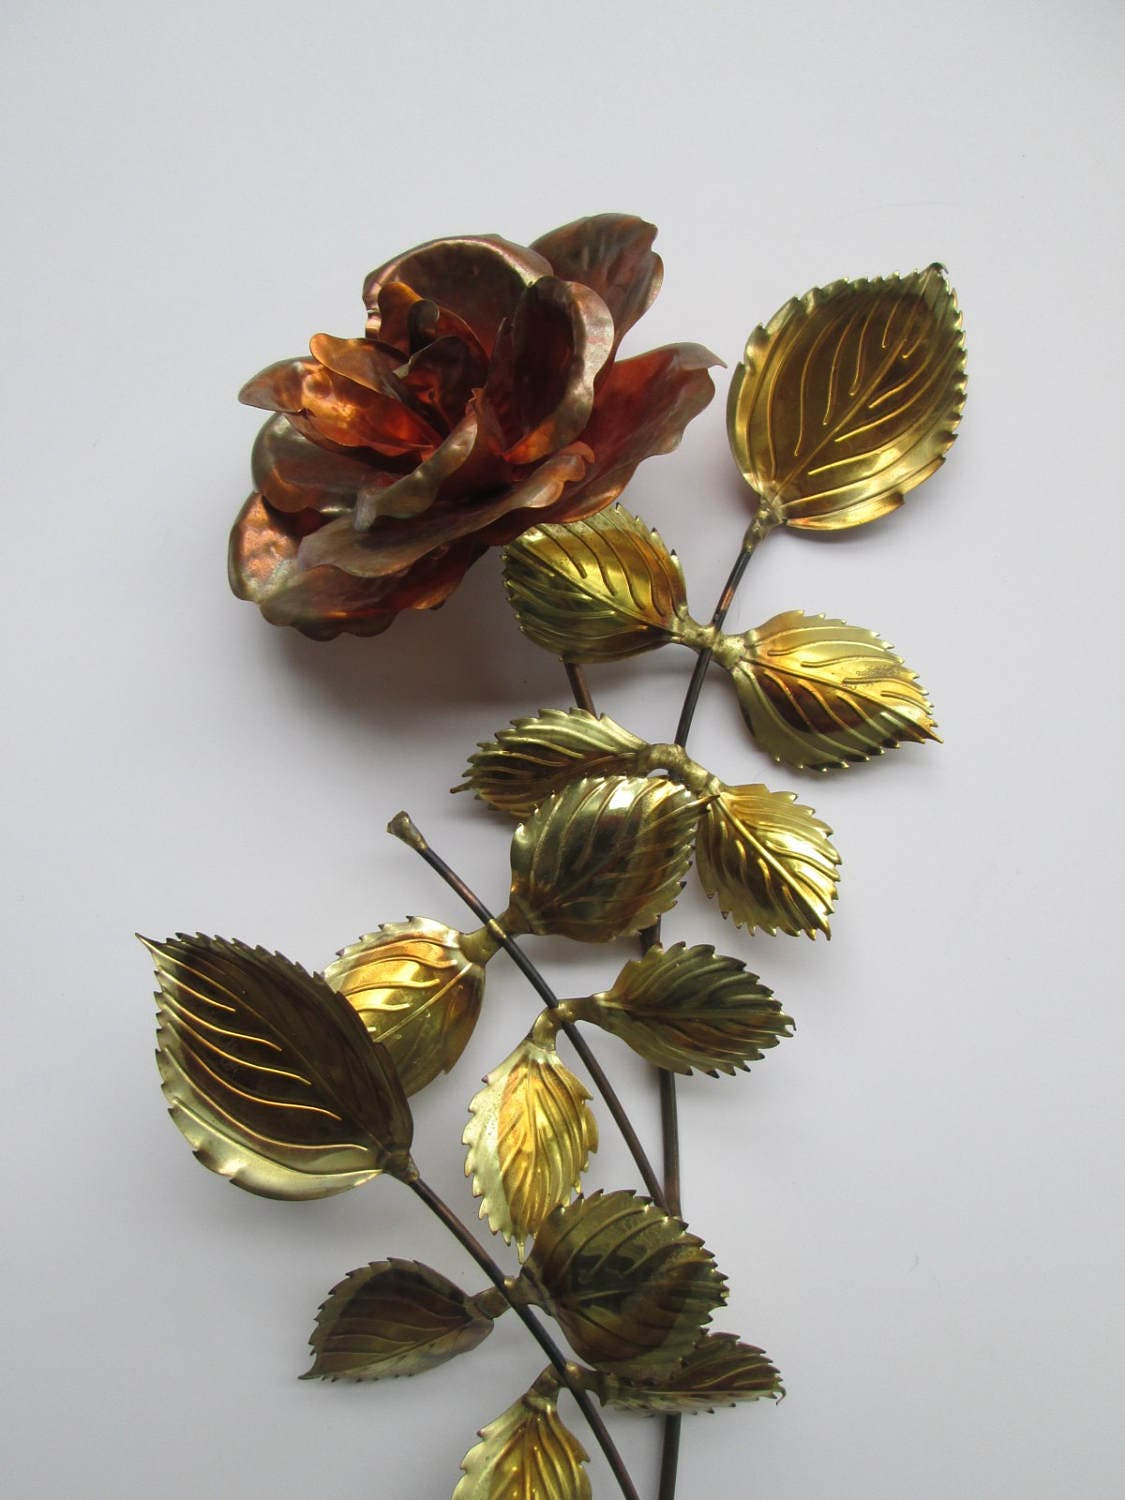 Metal Rose Wall Art Copper & Brass Metal Rose Wall Art Sculpture E10231018401479694M